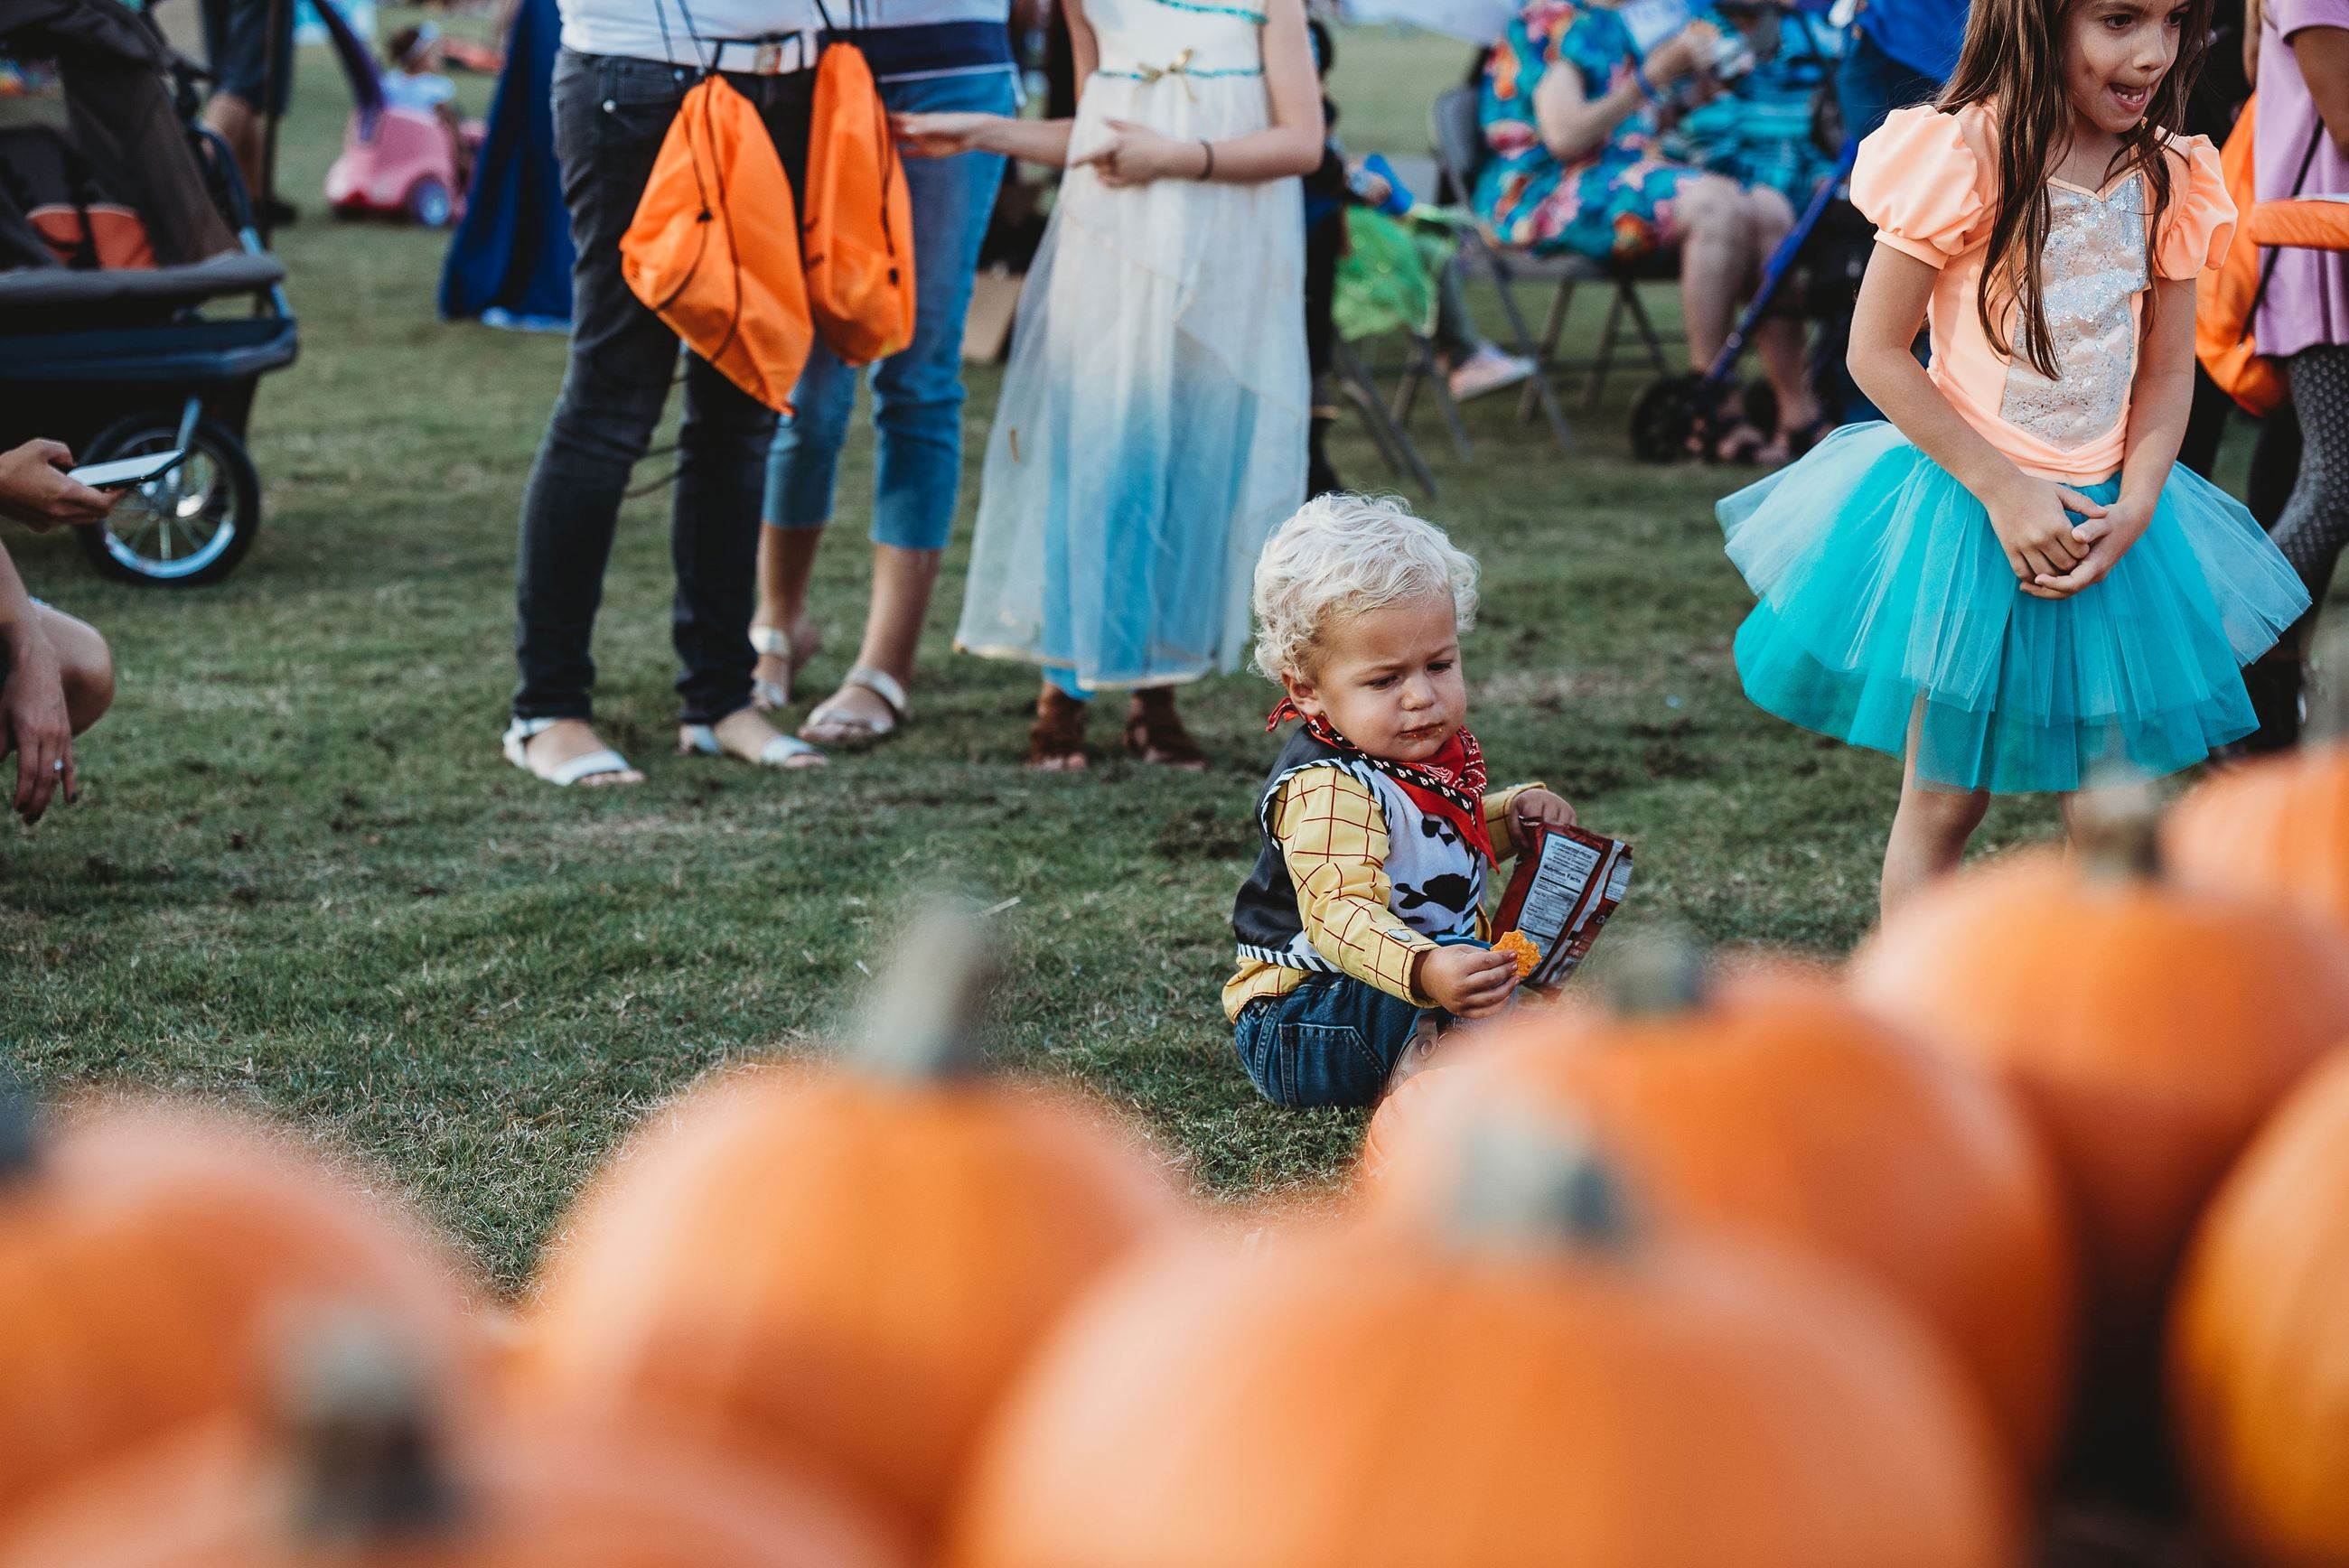 Baby Dressed as Woody from Toy Story Sits in the Grass Next to a Bunch of Pumpkins